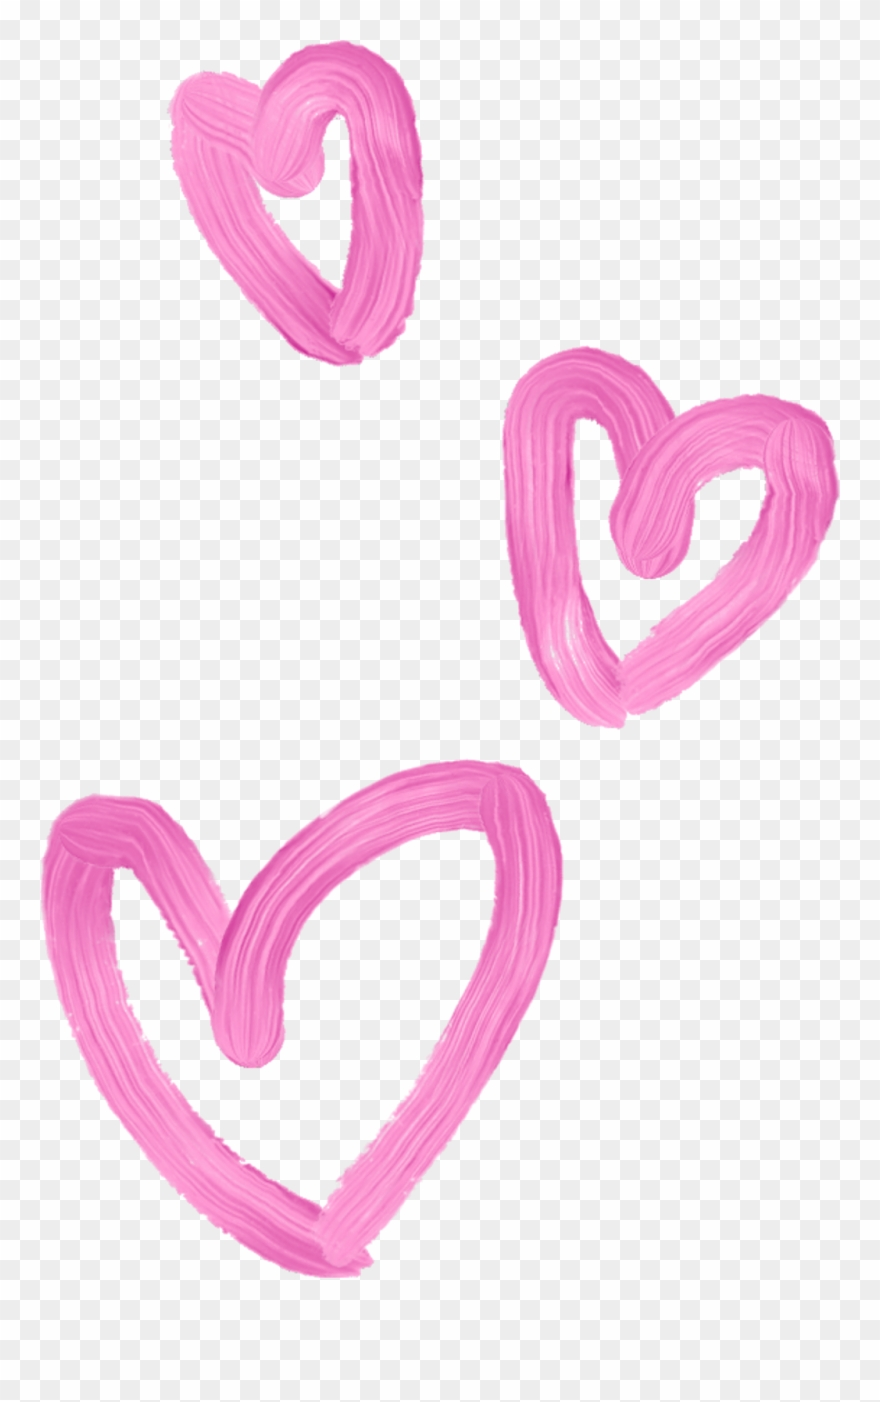 Lovely Girly Hearts Corazones Tiara 3d Whatsapp Pink.